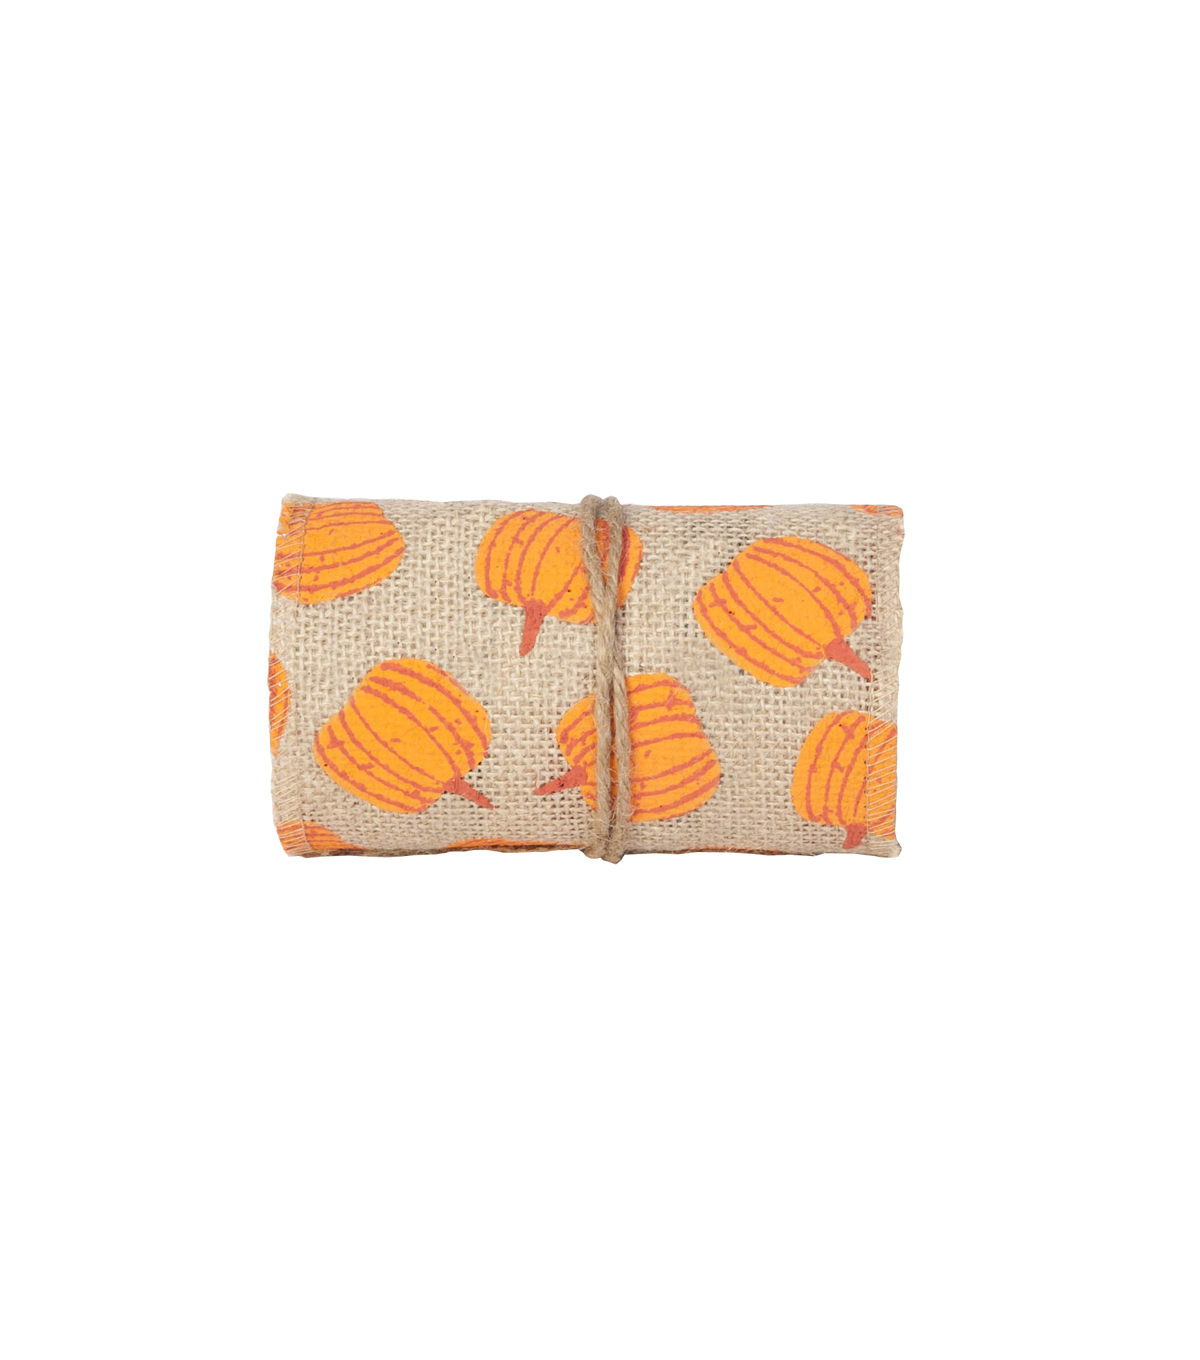 Simply Autumn Burlap Roll 5\u0027\u0027x15\u0027-Pumpkins on Natural